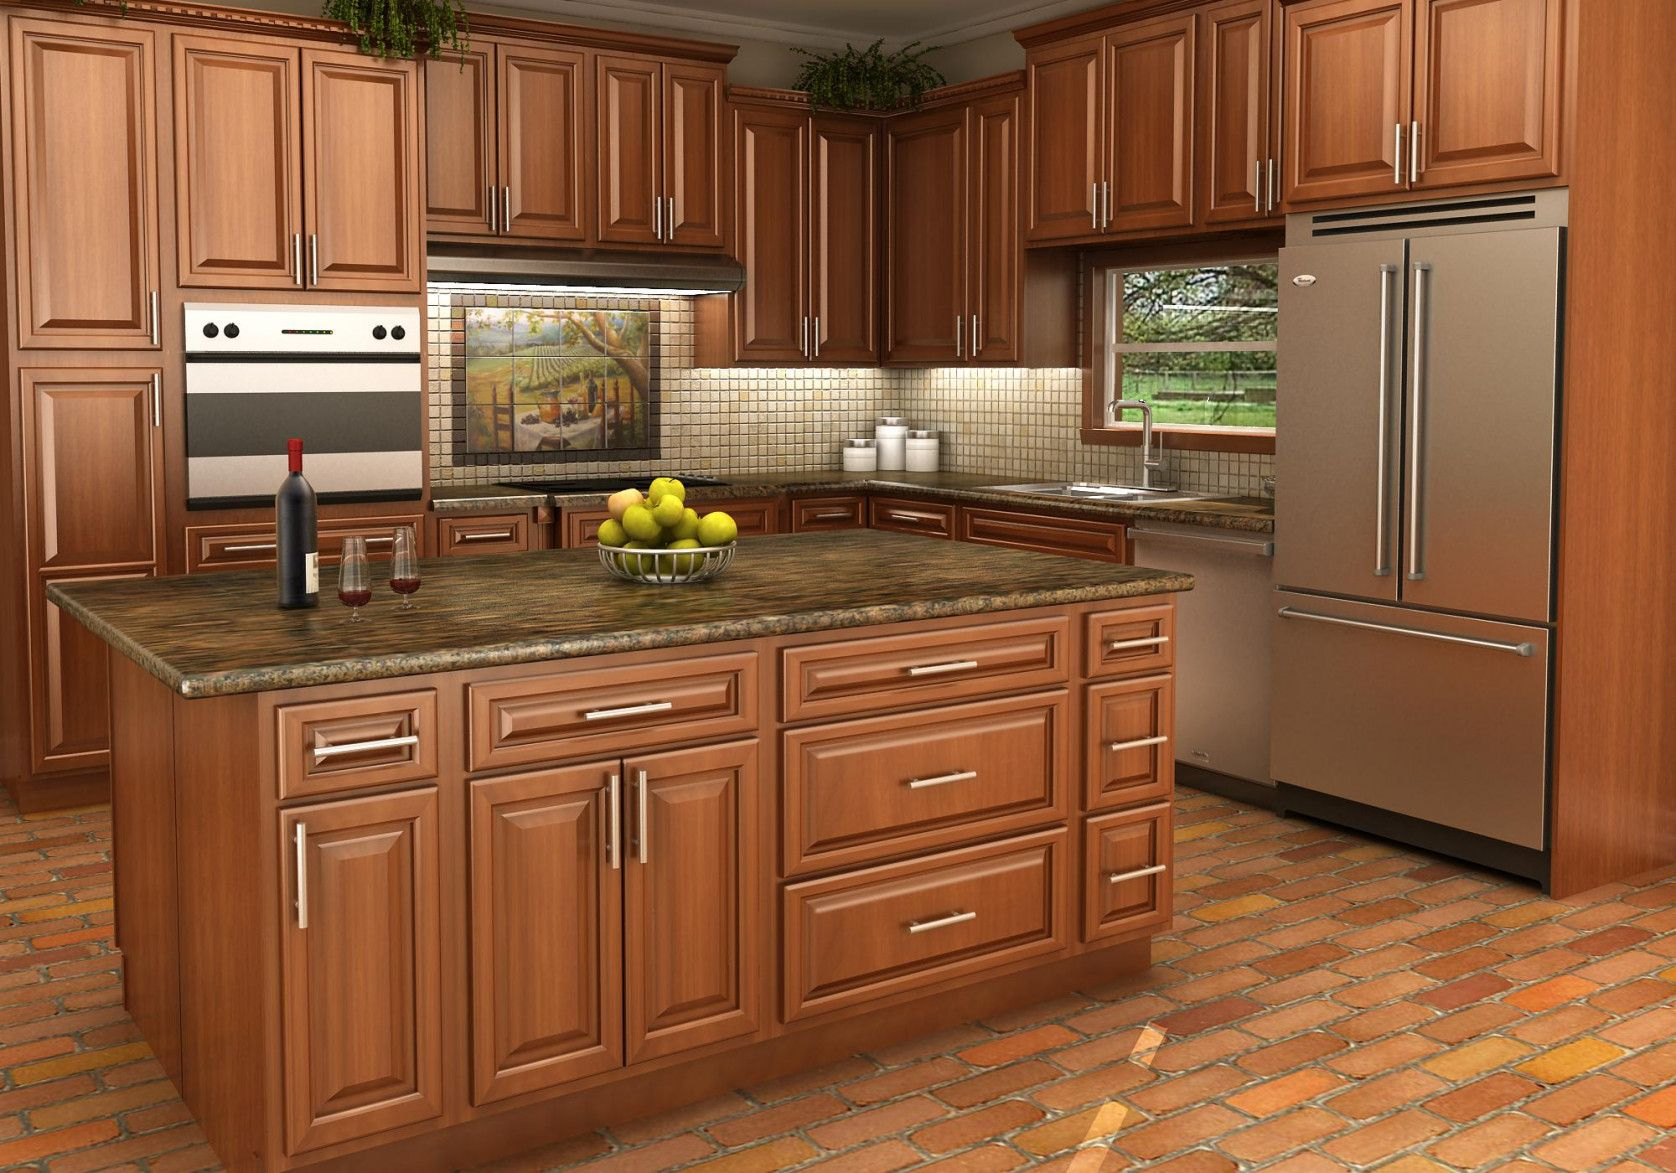 2019 Replacement Cabinet Drawers Lowes   Kitchen Nook Lighting Ideas Check  More At Http:/